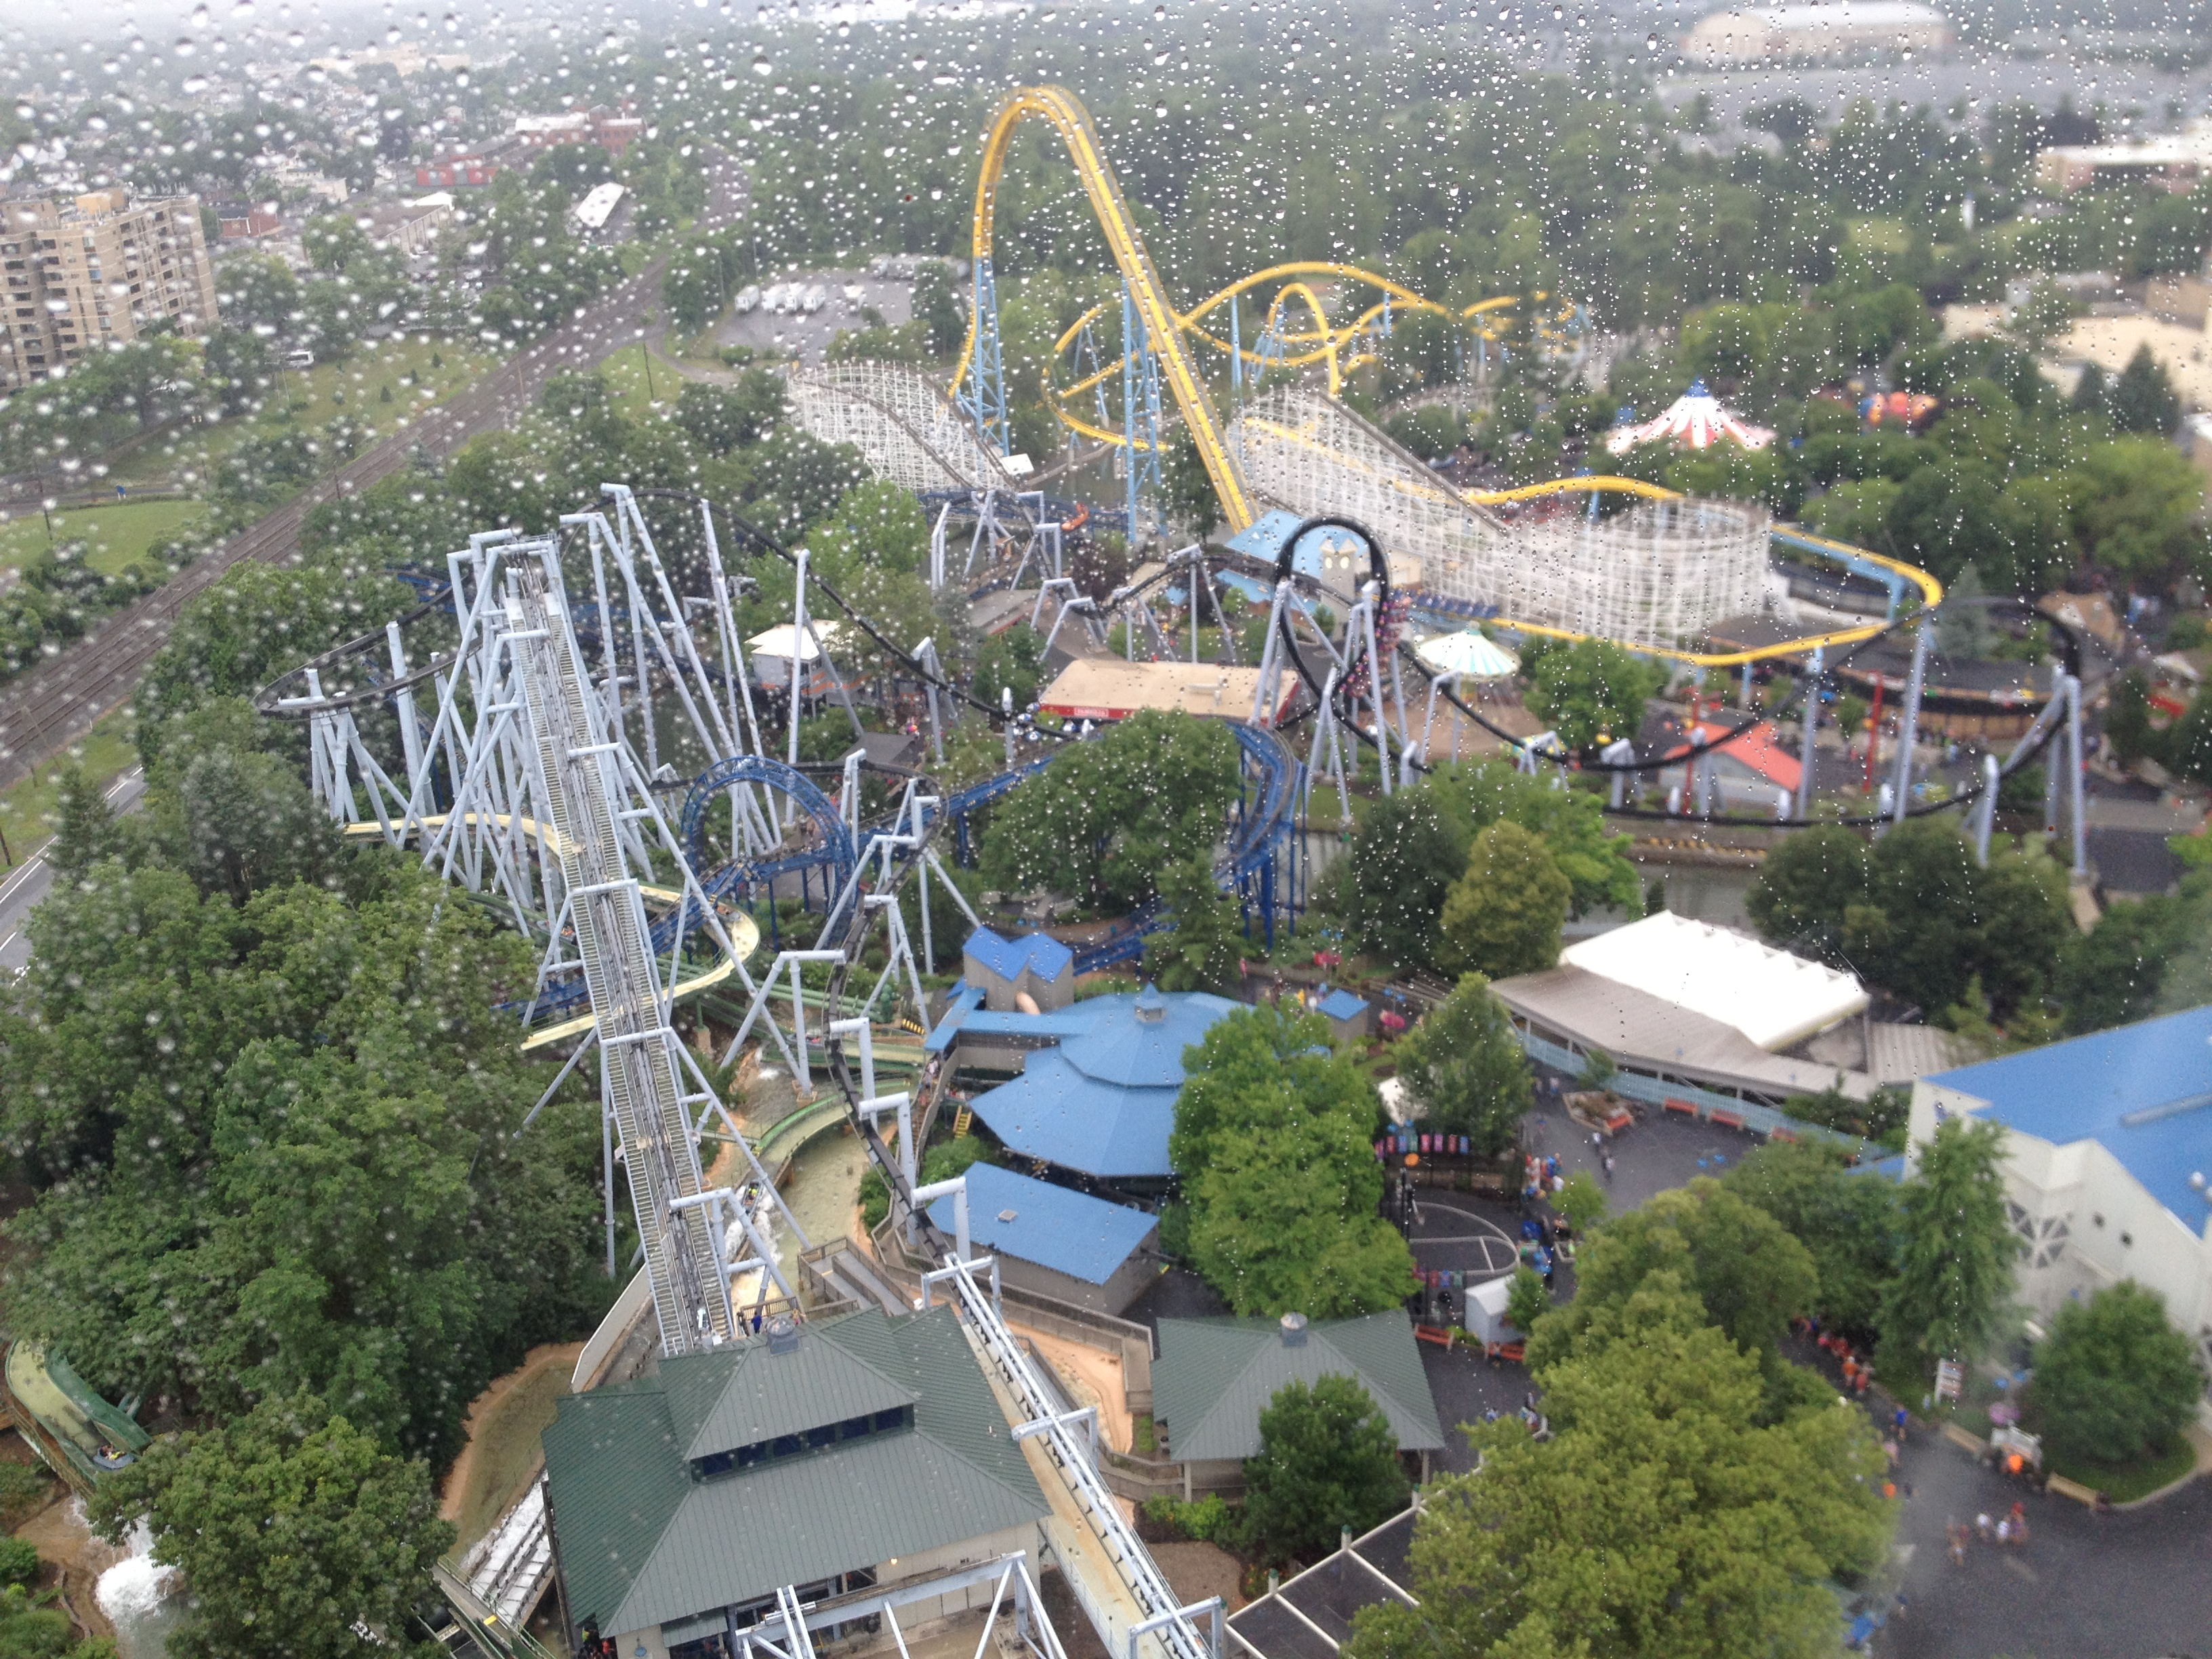 Hershey Park Pa A Food Allergy Review The Food Allergy Mom